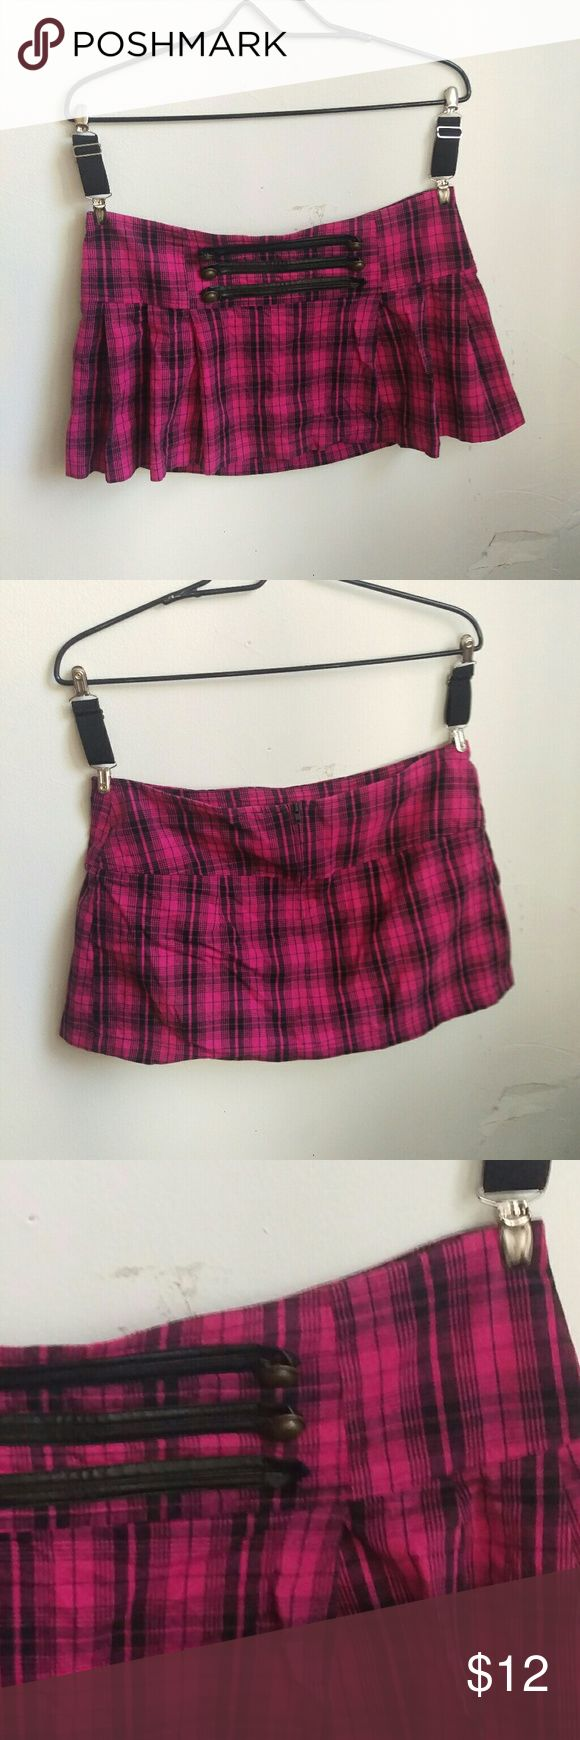 Plaid pleated mini skirt Pink plaid schoolgirl-style pleated miniskirt. One of the (non-functional) buttons on the front is missing (pictured) There's no size tag so I'm just guessing, feel free to comment for measurements  **10% off bundles! All offers considered** Punk emo goth gothic rave raver scene retro pinup vintage school girl tartan uniform 90s rockabilly tartan clueless girly alt alternative Sweet Love Skirts Mini